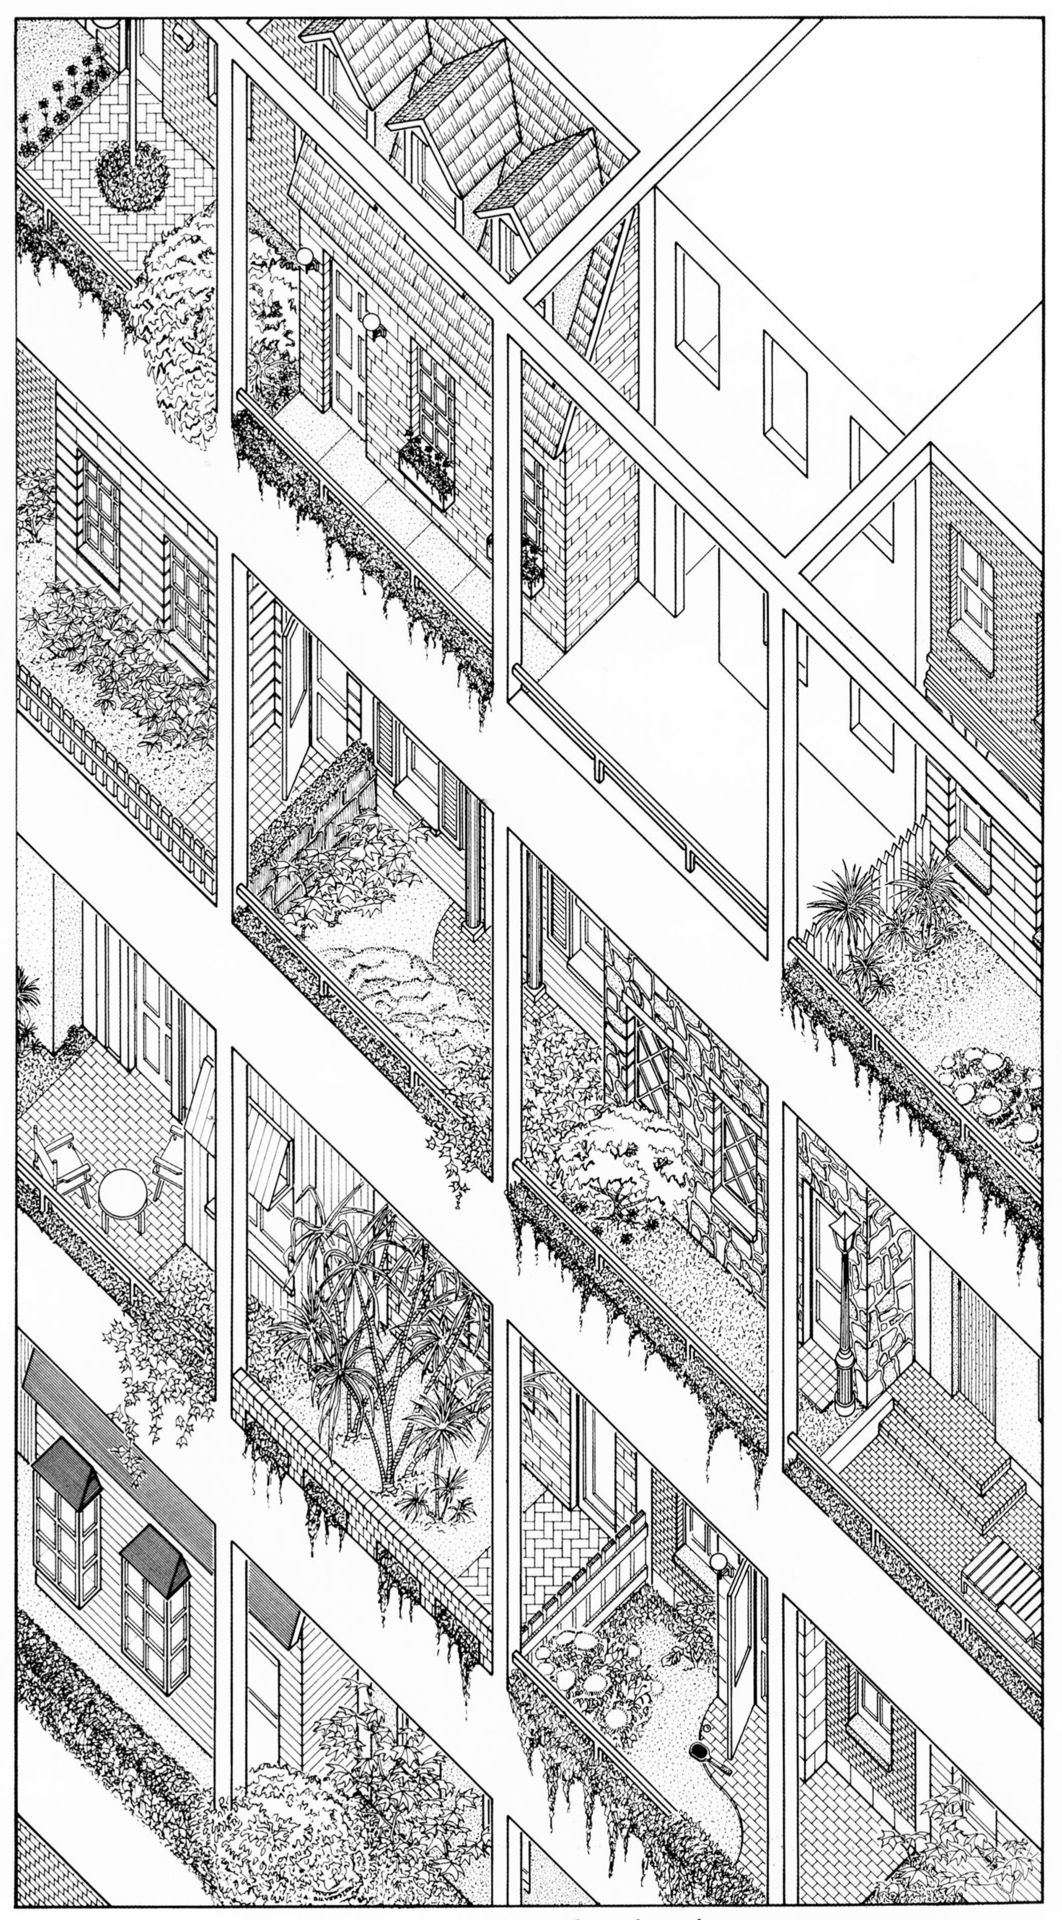 JAMES WINES:SITE, HIGH RISE OF HOMES, CATALOG OF HOUSE UNITS, MAJOR URBAN CENTER, 1981